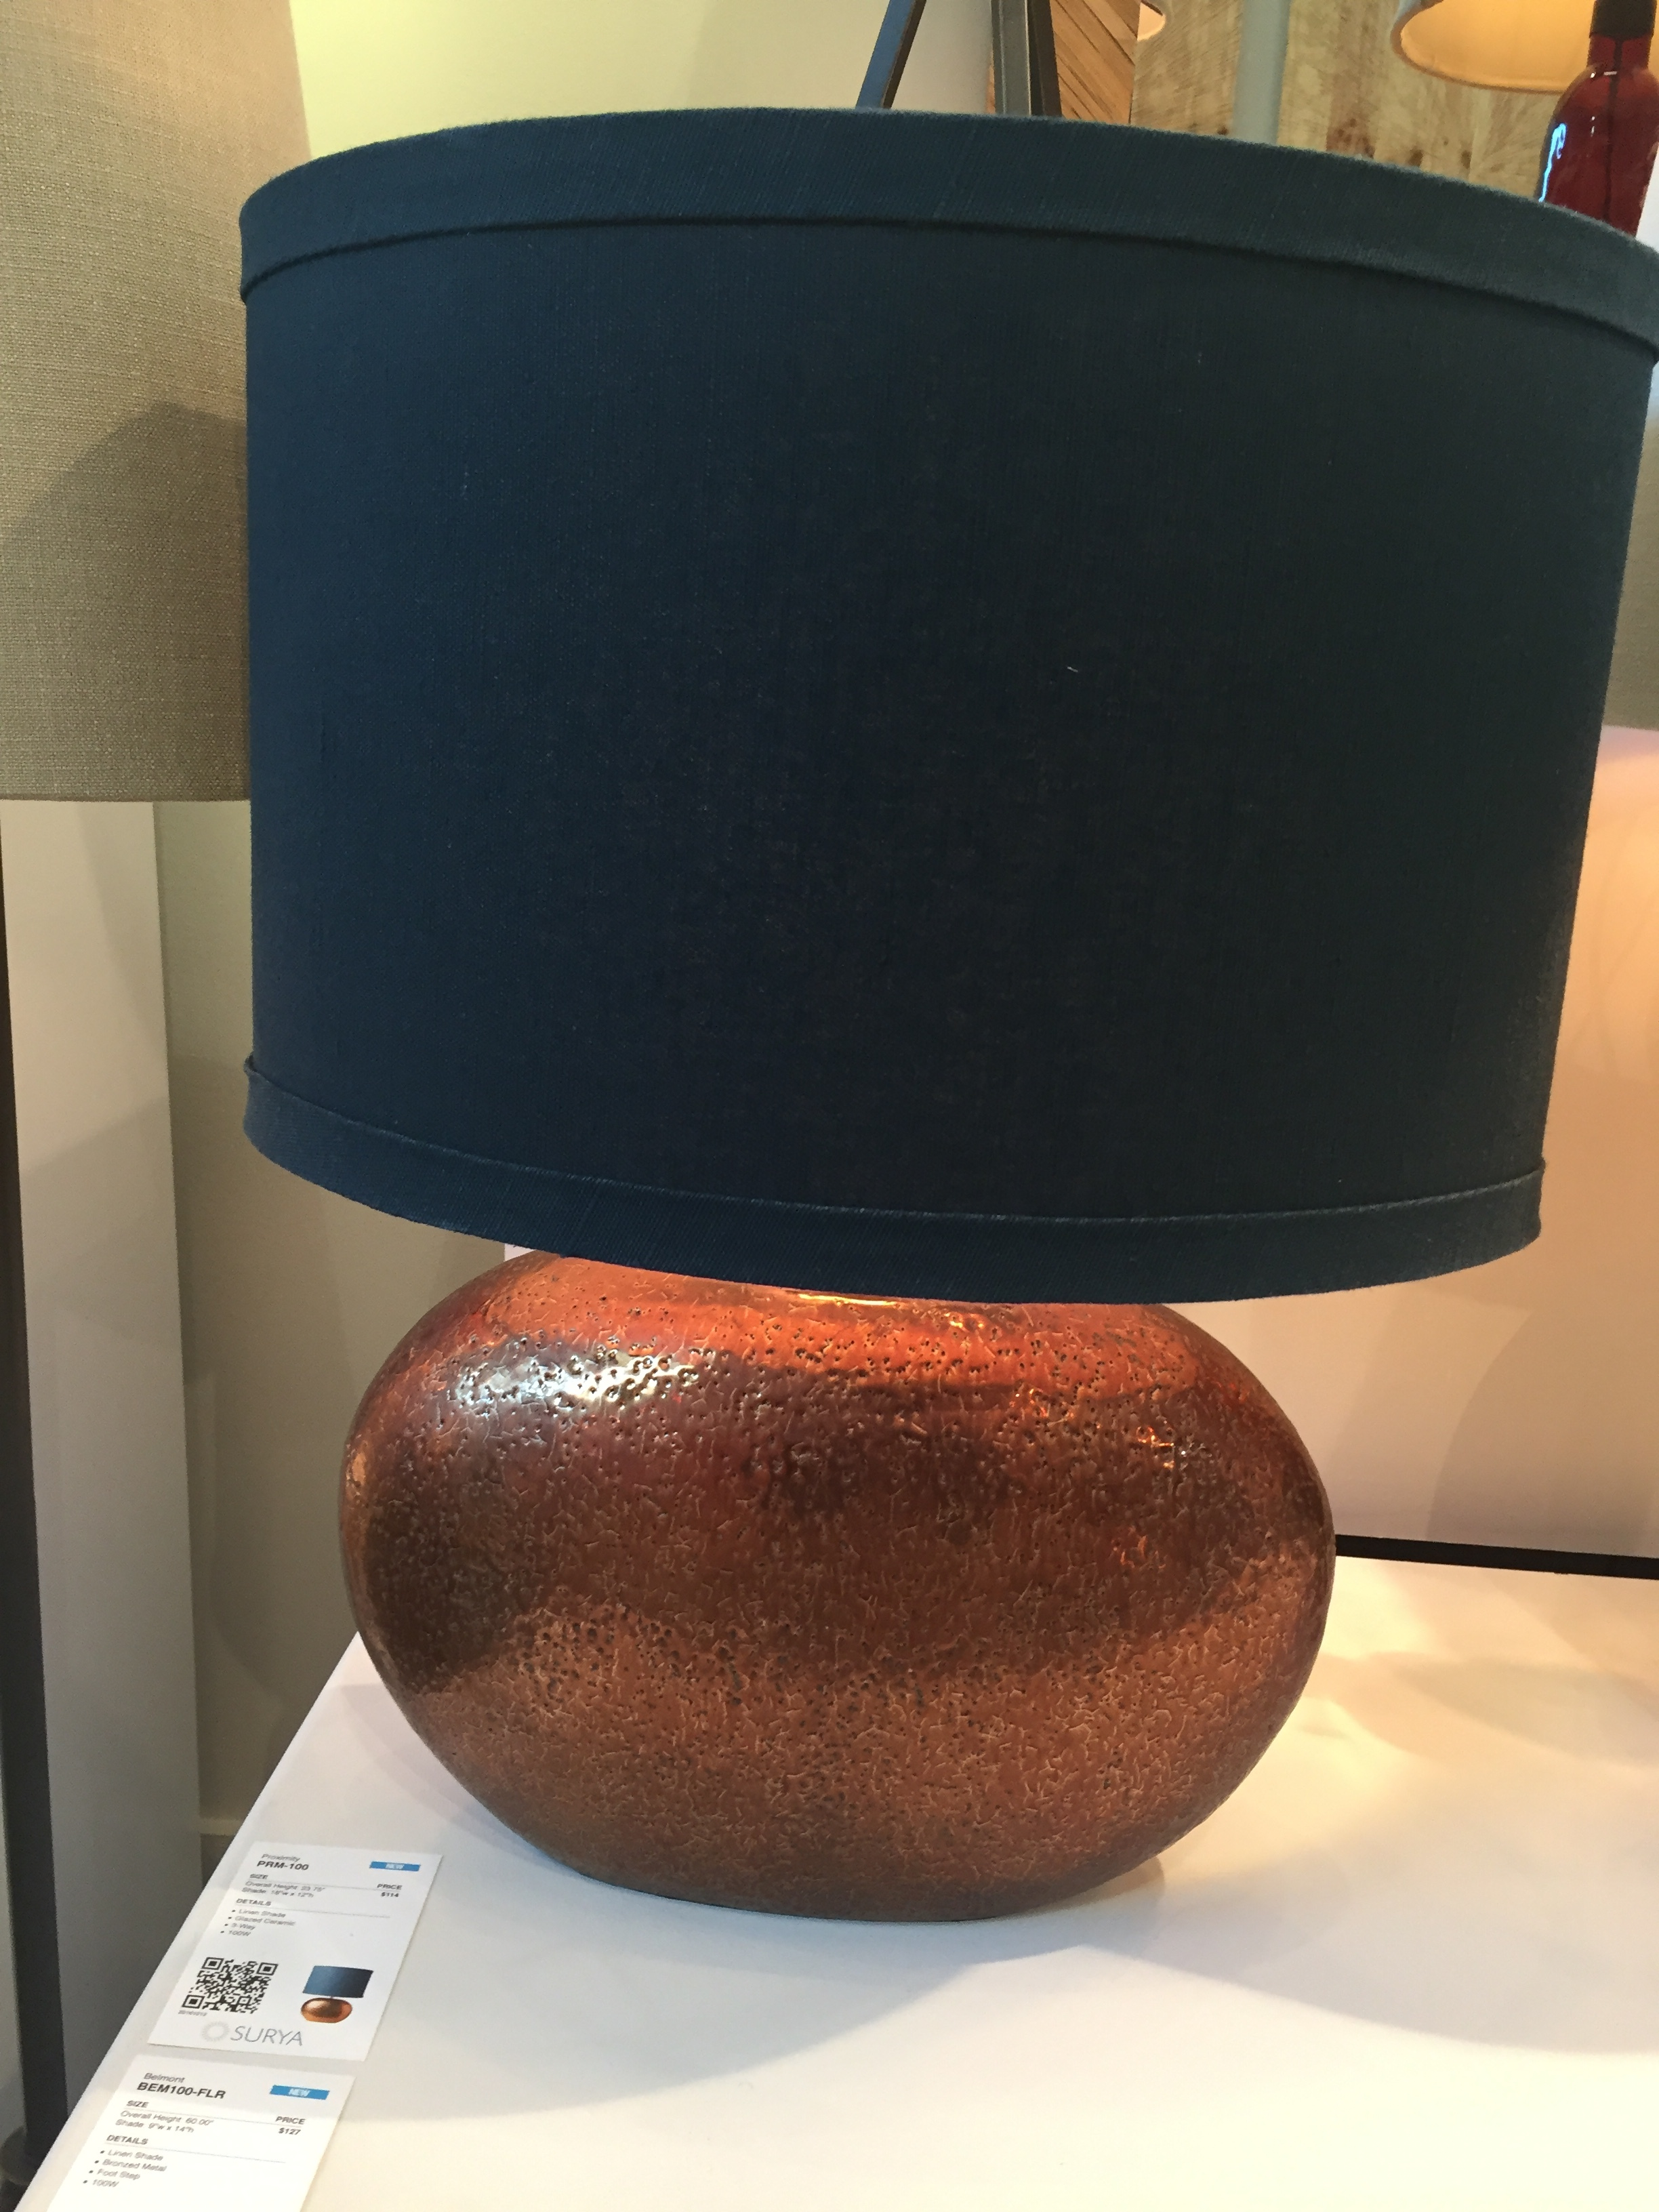 Bold and brassy...well...copper ceramic really! The bold navy blue shade and copper ceramic base from Surya is stunning!